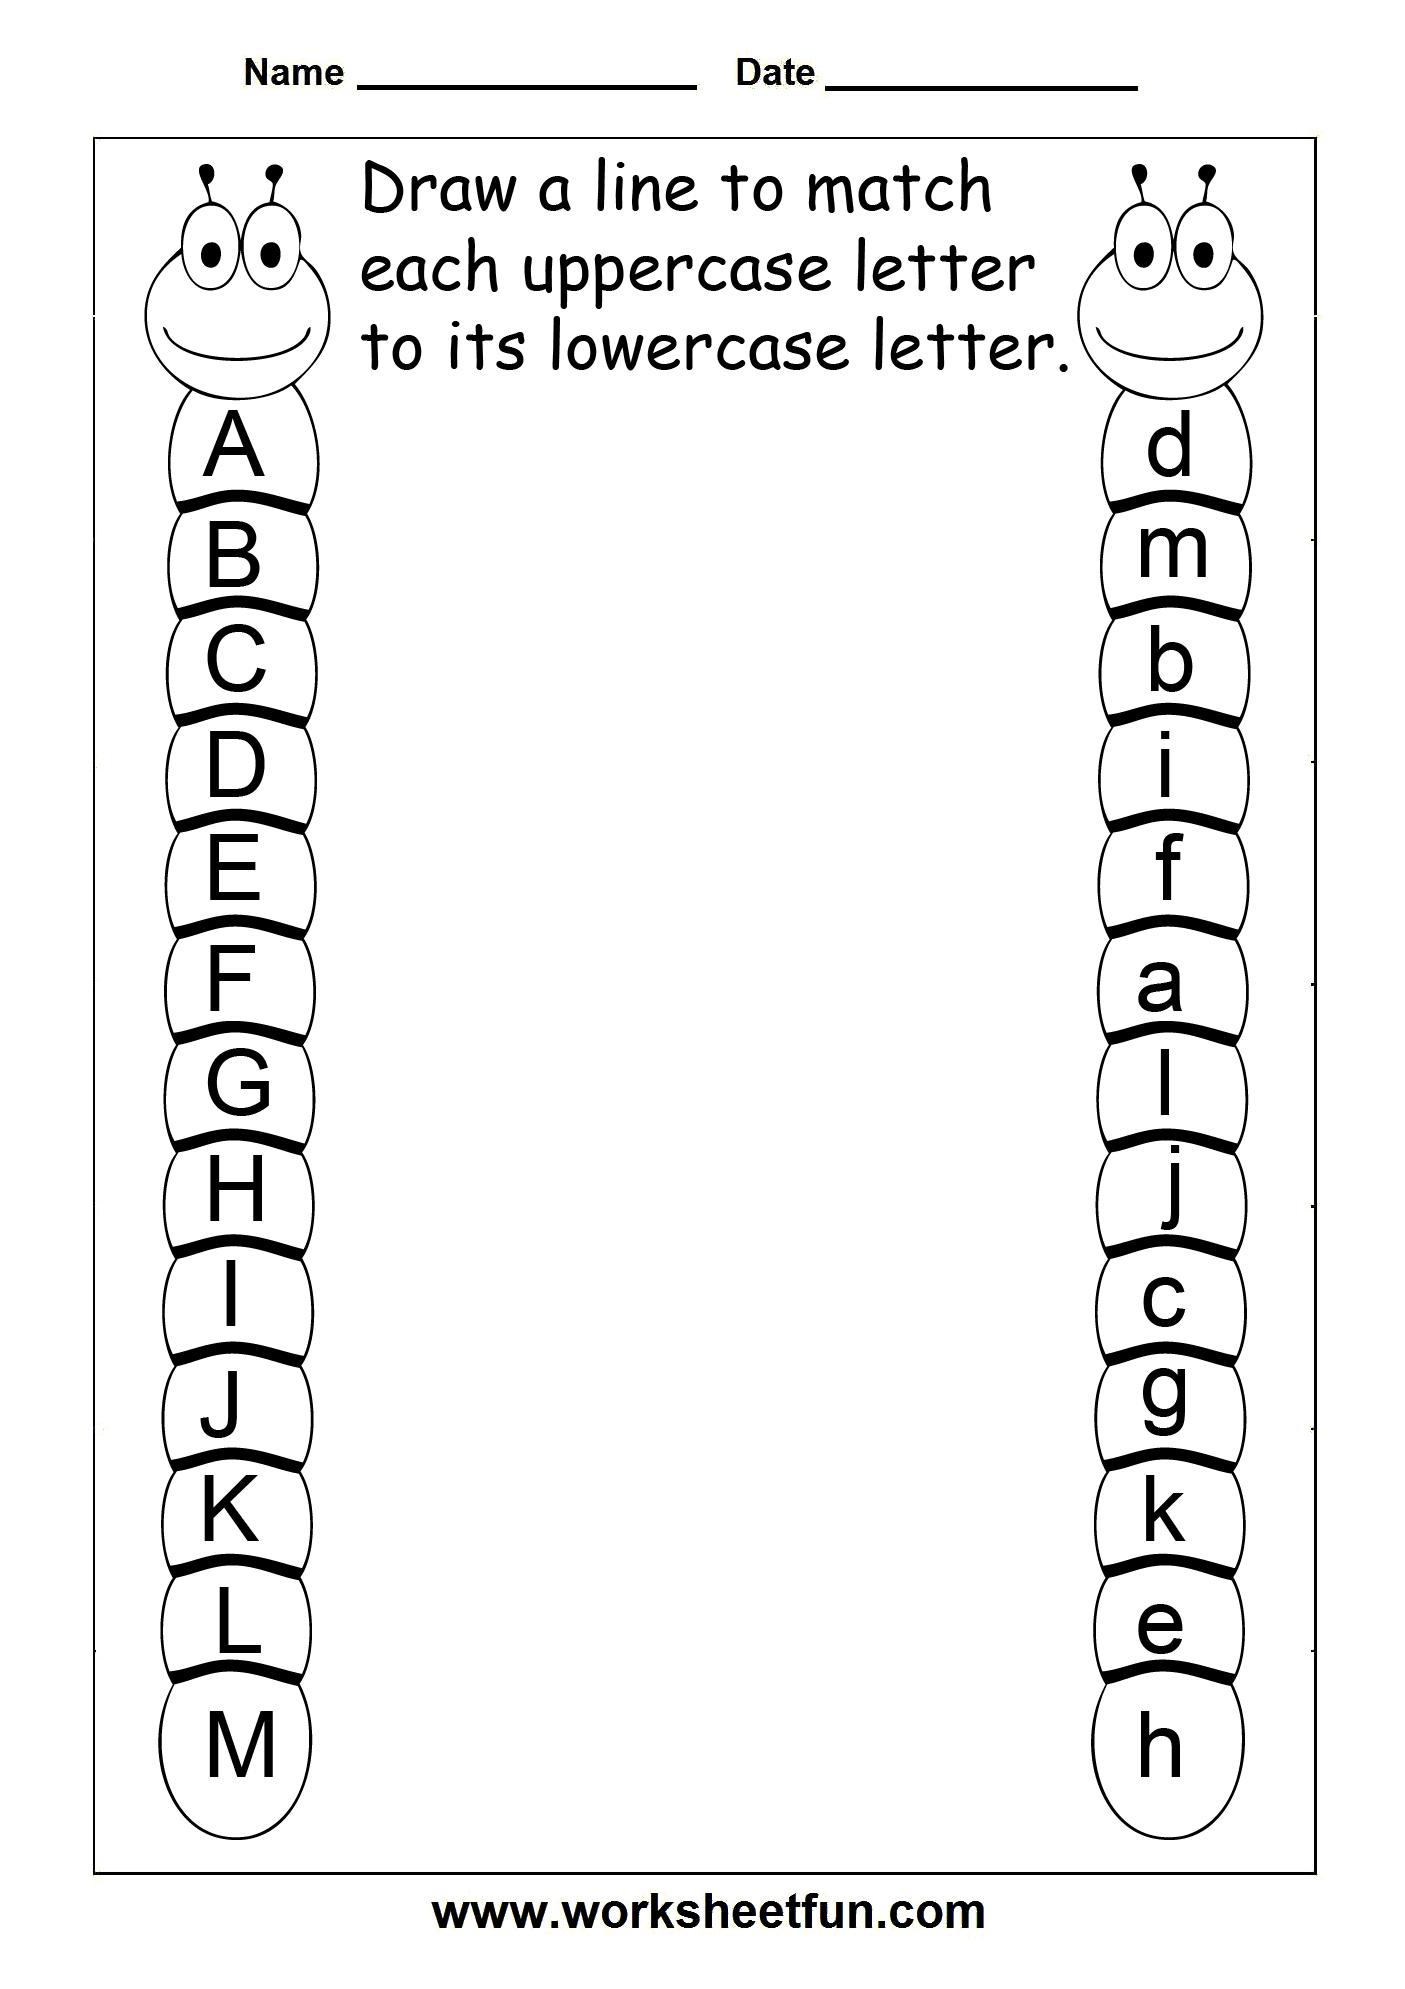 Weirdmailus  Marvellous  Images About Work Worksheet On Pinterest  Hidden Pictures  With Licious  Images About Work Worksheet On Pinterest  Hidden Pictures Color By Numbers And Puzzles With Cool Worksheets Numbers Also Fraction Inequalities Worksheet In Addition Language Printable Worksheets And Math Worksheets Th Grade Multiplication As Well As D Worksheet Additionally Reading For First Grade Worksheets From Pinterestcom With Weirdmailus  Licious  Images About Work Worksheet On Pinterest  Hidden Pictures  With Cool  Images About Work Worksheet On Pinterest  Hidden Pictures Color By Numbers And Puzzles And Marvellous Worksheets Numbers Also Fraction Inequalities Worksheet In Addition Language Printable Worksheets From Pinterestcom